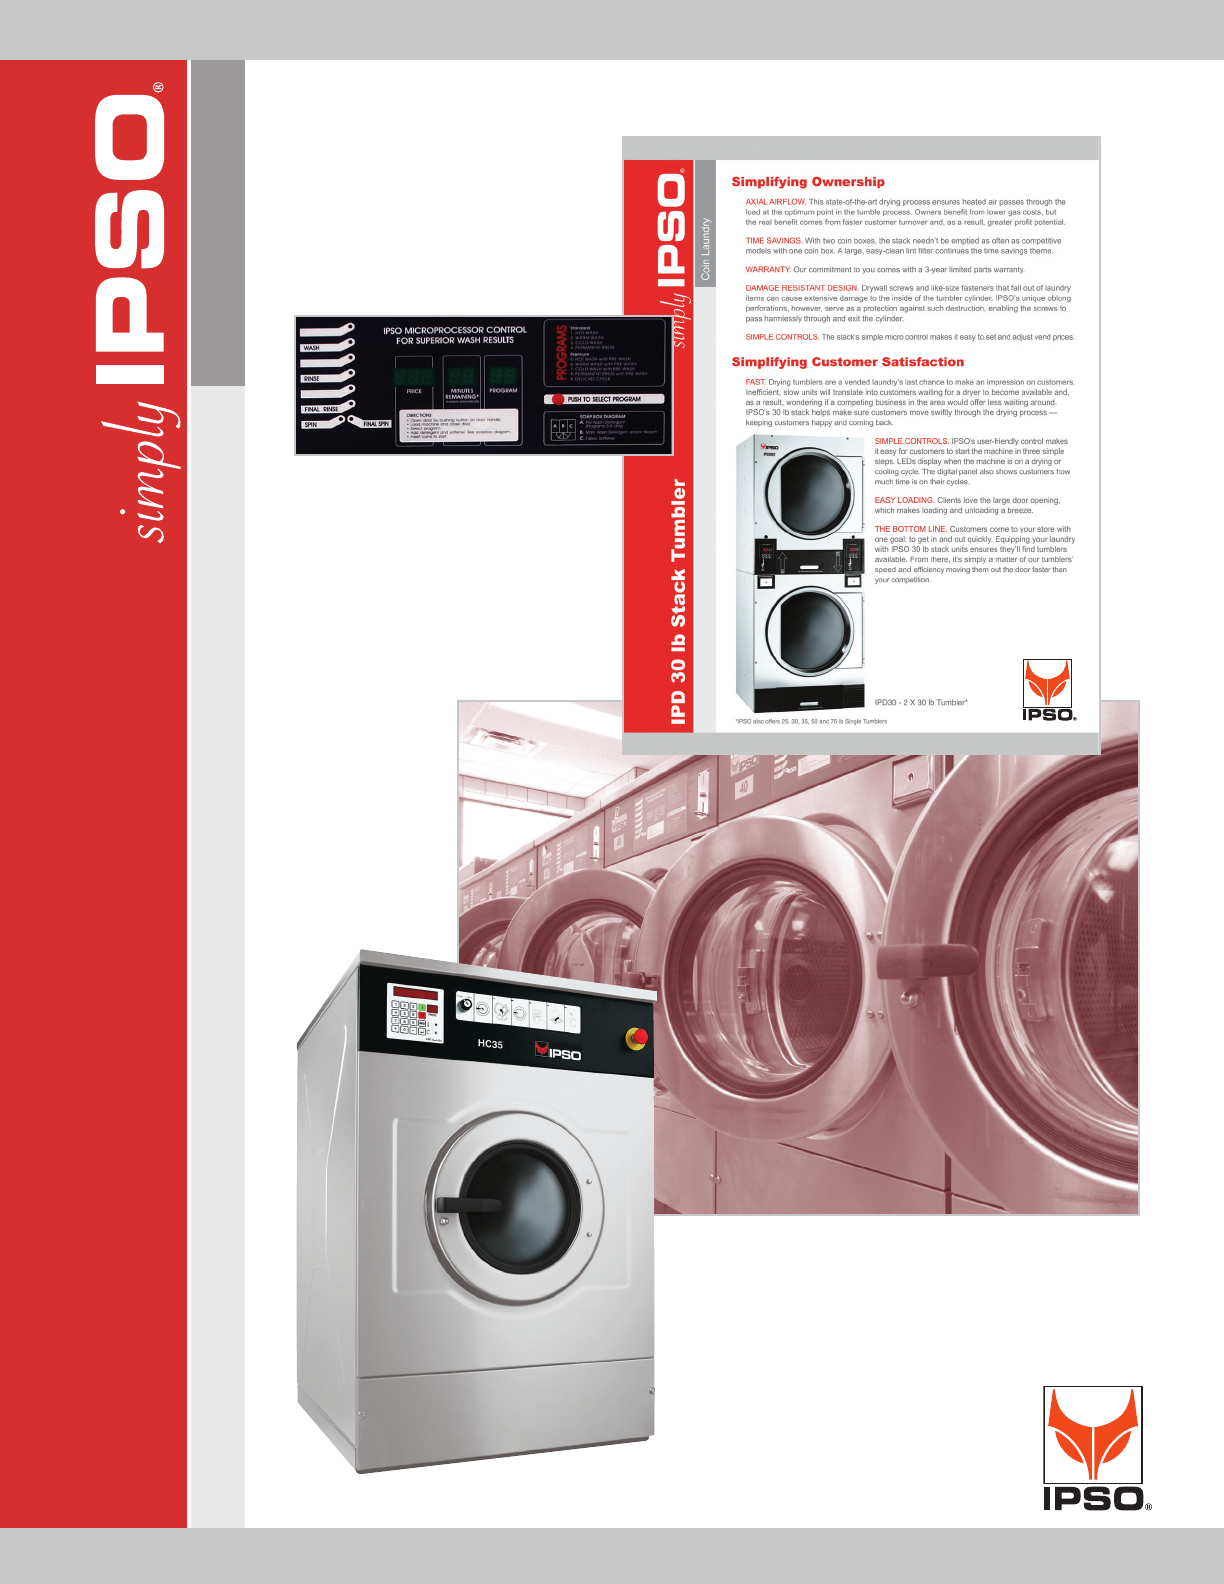 ipso washer washer user guide manualsonline com rh laundry manualsonline com Instruction Manual Book Manuals in PDF